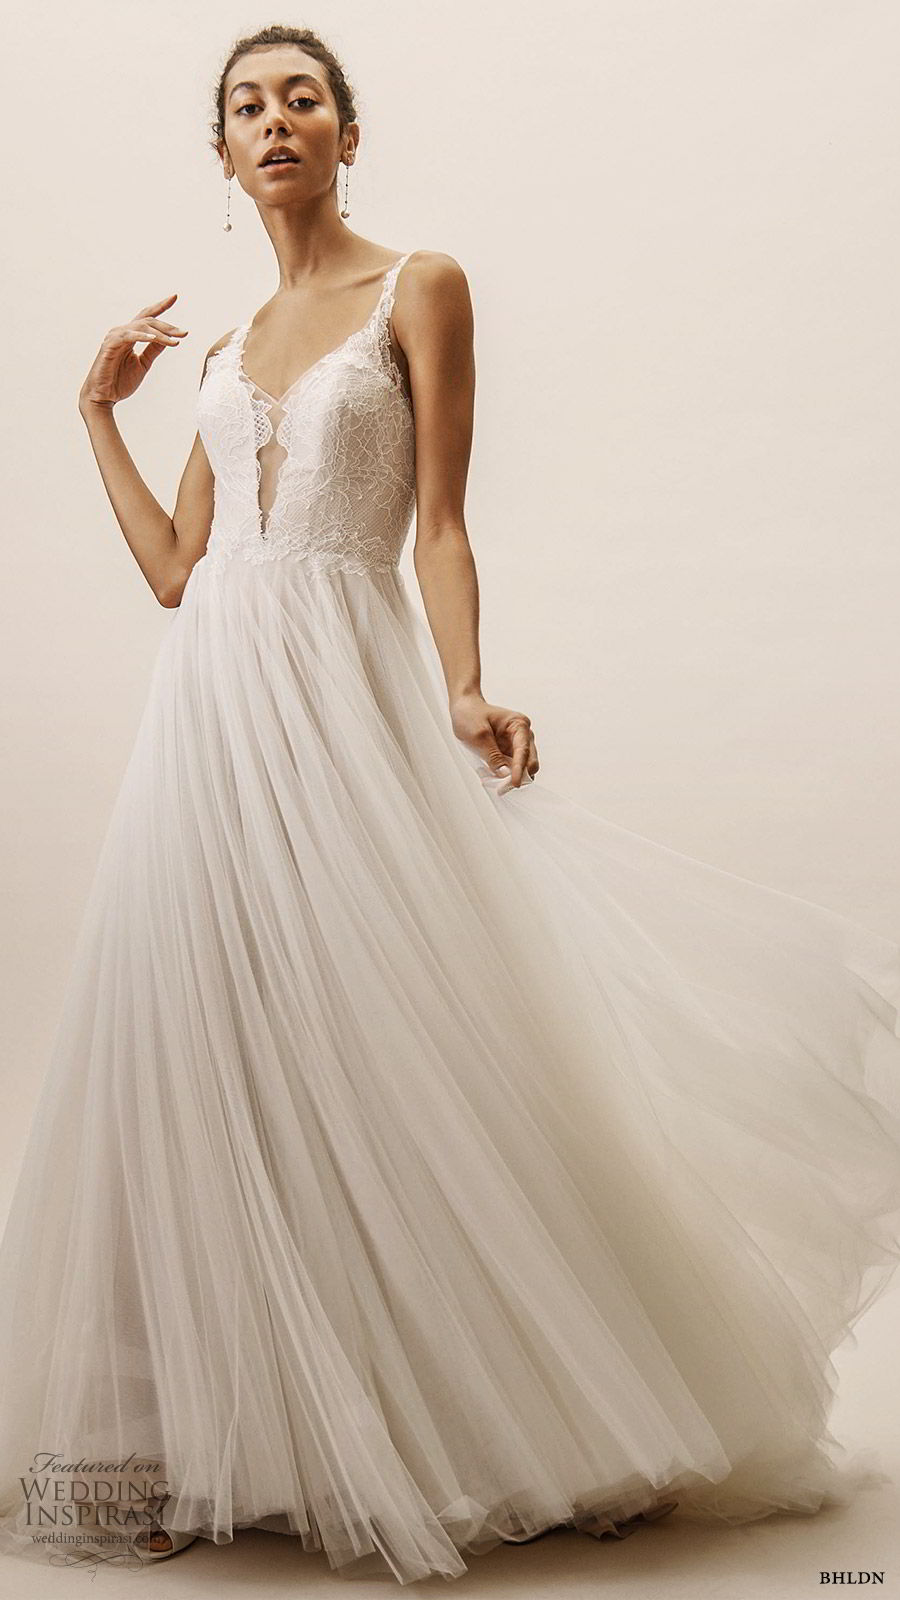 bhldn spring 2019 bridal sleeveless plunging v neckline lace bodice a line ball gown wedding dress low back sweep train romantic (8) mv